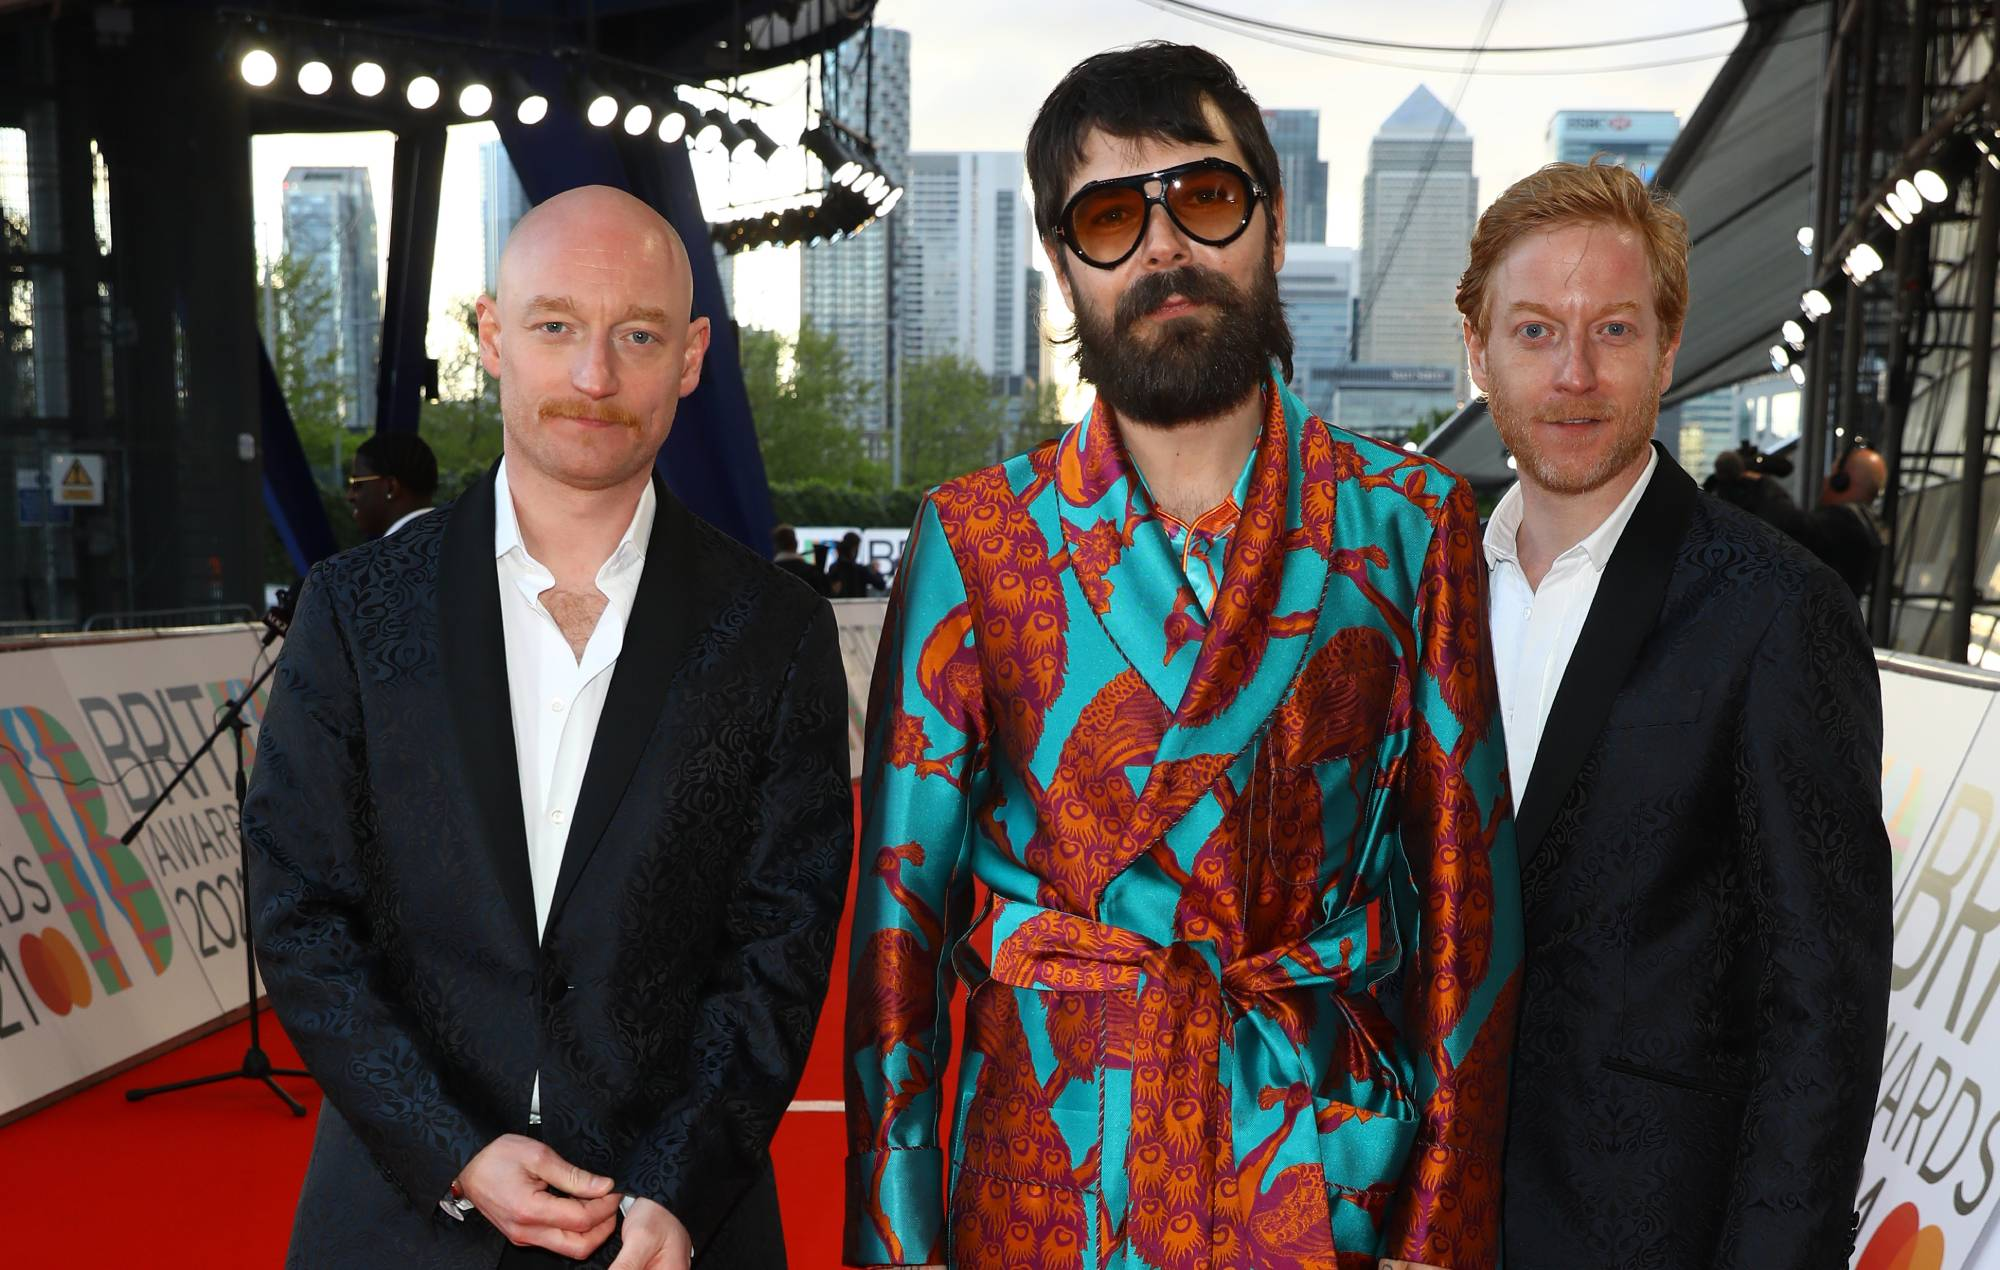 Ben Johnston, Simon Neil and James Johnston of Biffy Clyro arrives at The BRIT Awards 2021 at The O2 Arena on May 11, 2021 in London, England. (Photo by JMEnternational/JMEnternational for BRIT Awards/Getty Images)